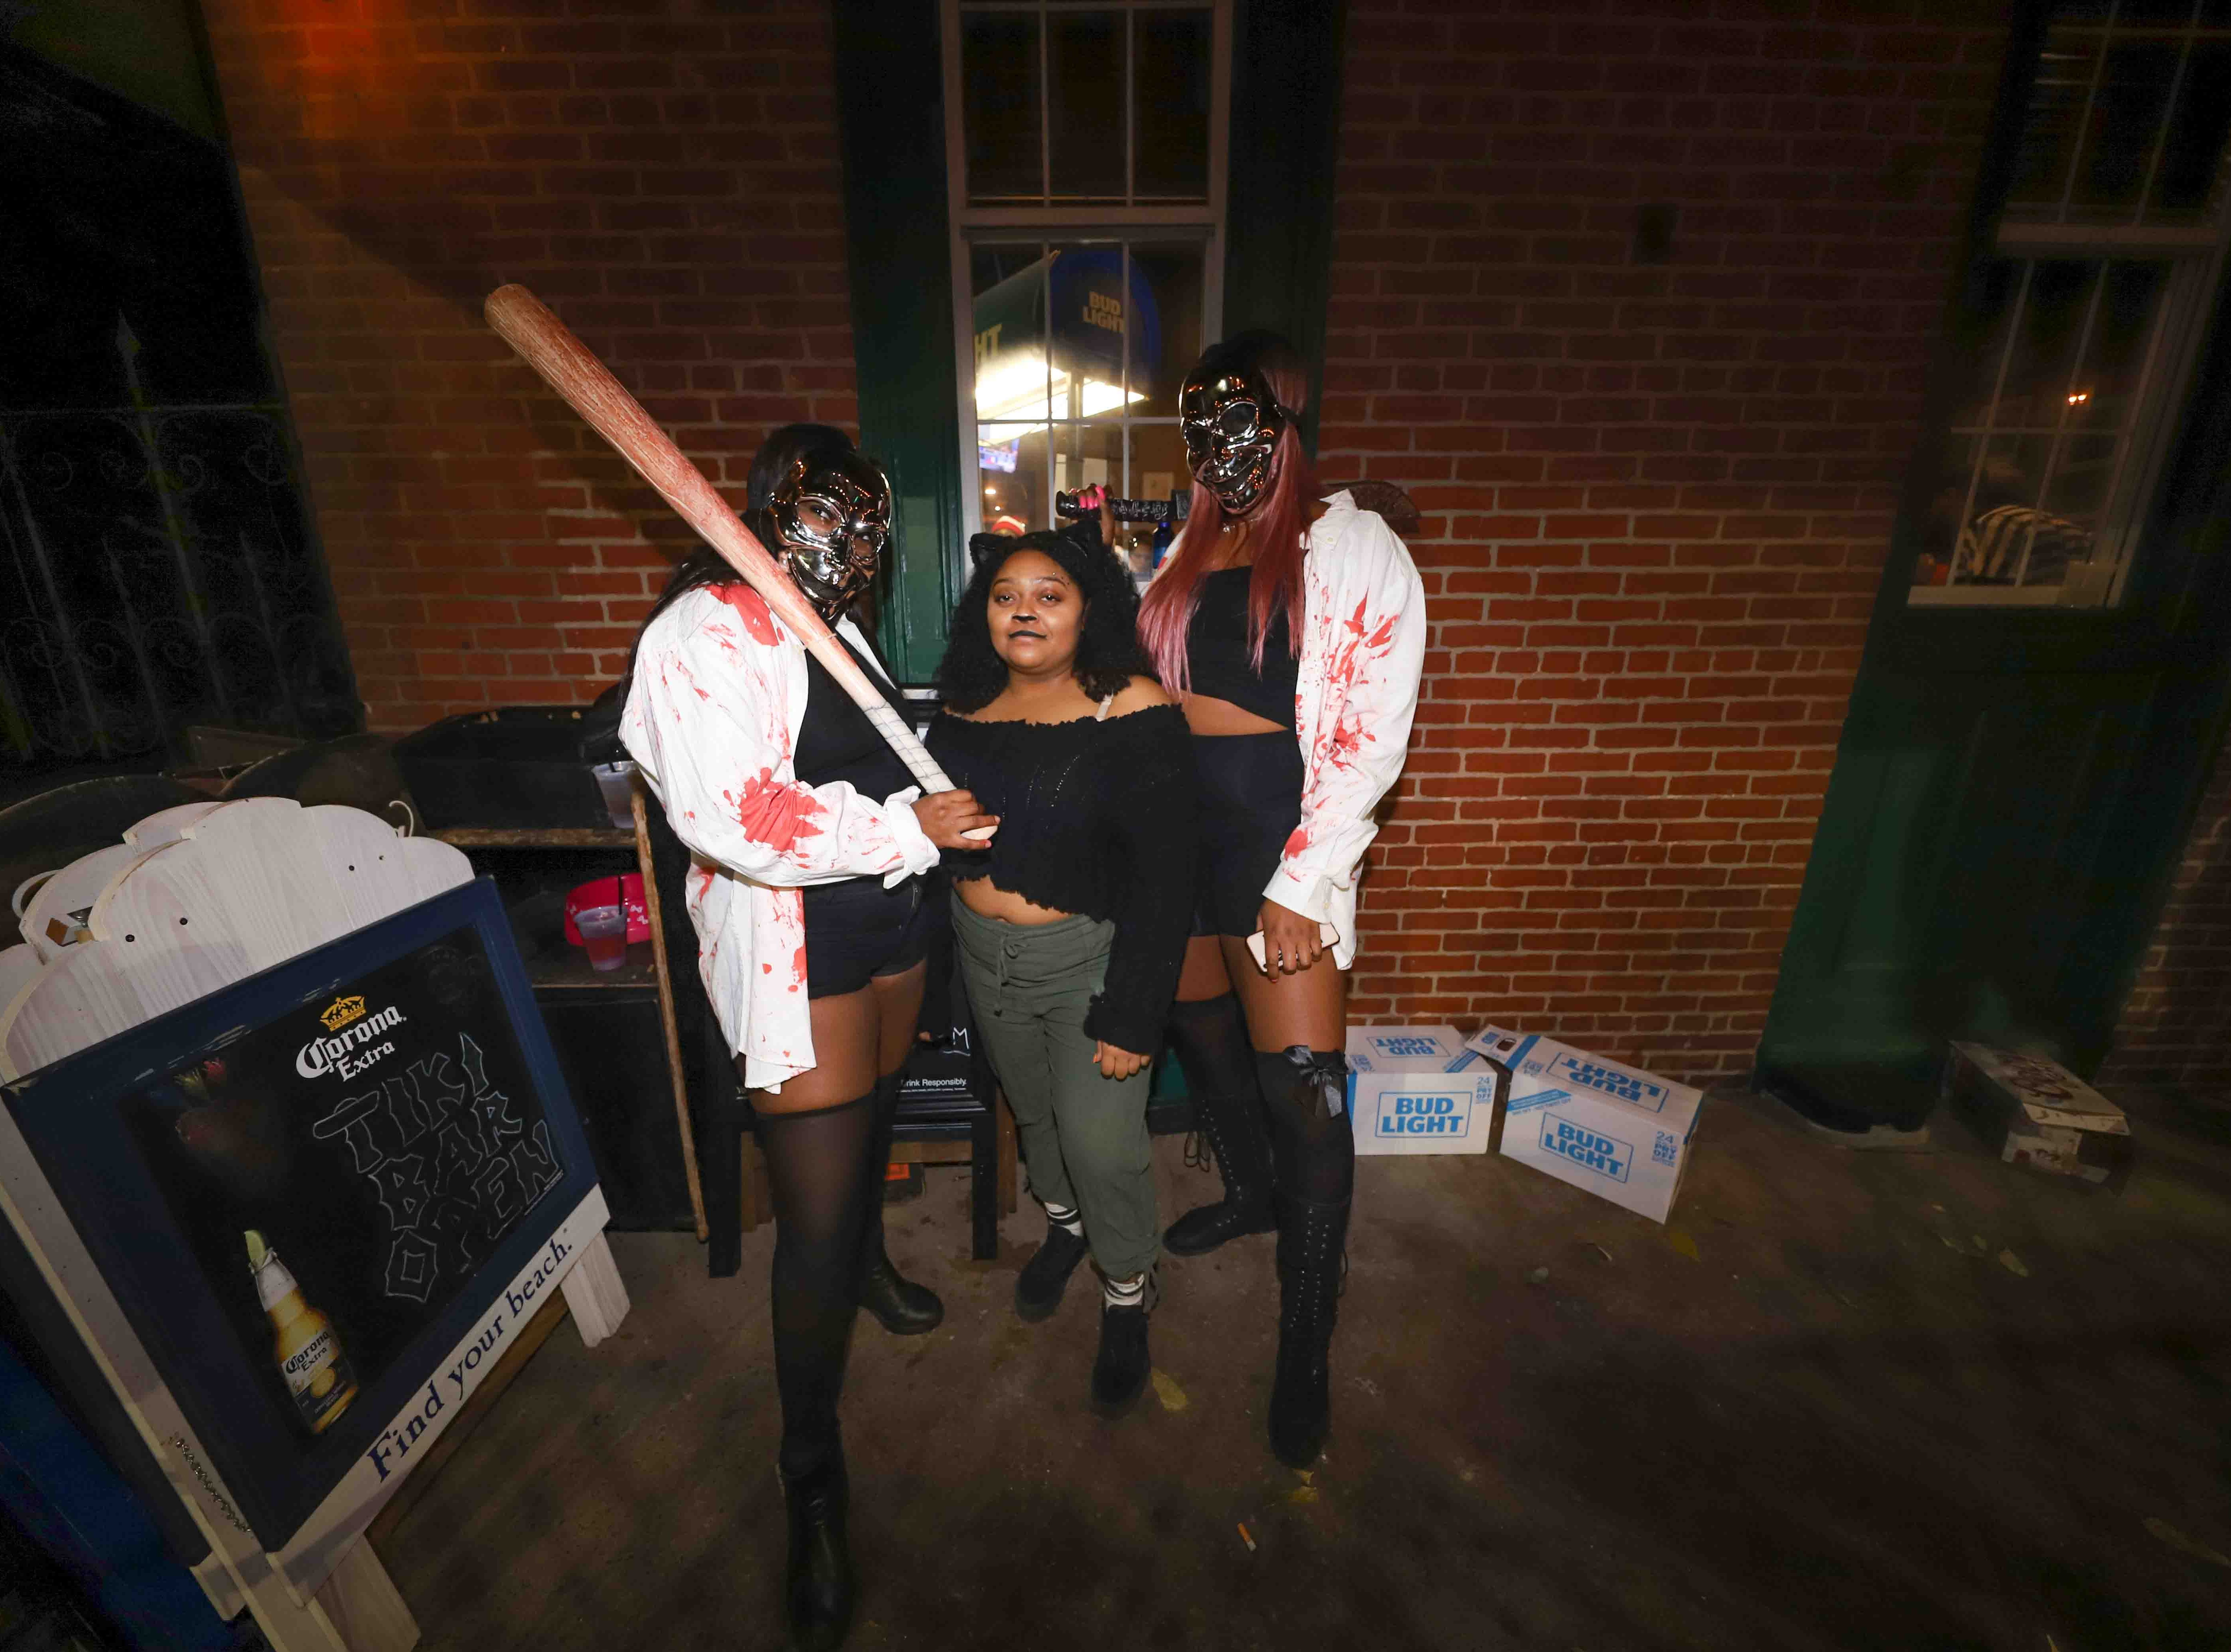 Patrons pose for a photo during the annual Trolley Square Halloween Loop Saturday, Oct. 27, 2018, at Kelly's Logan House in Wilmington.